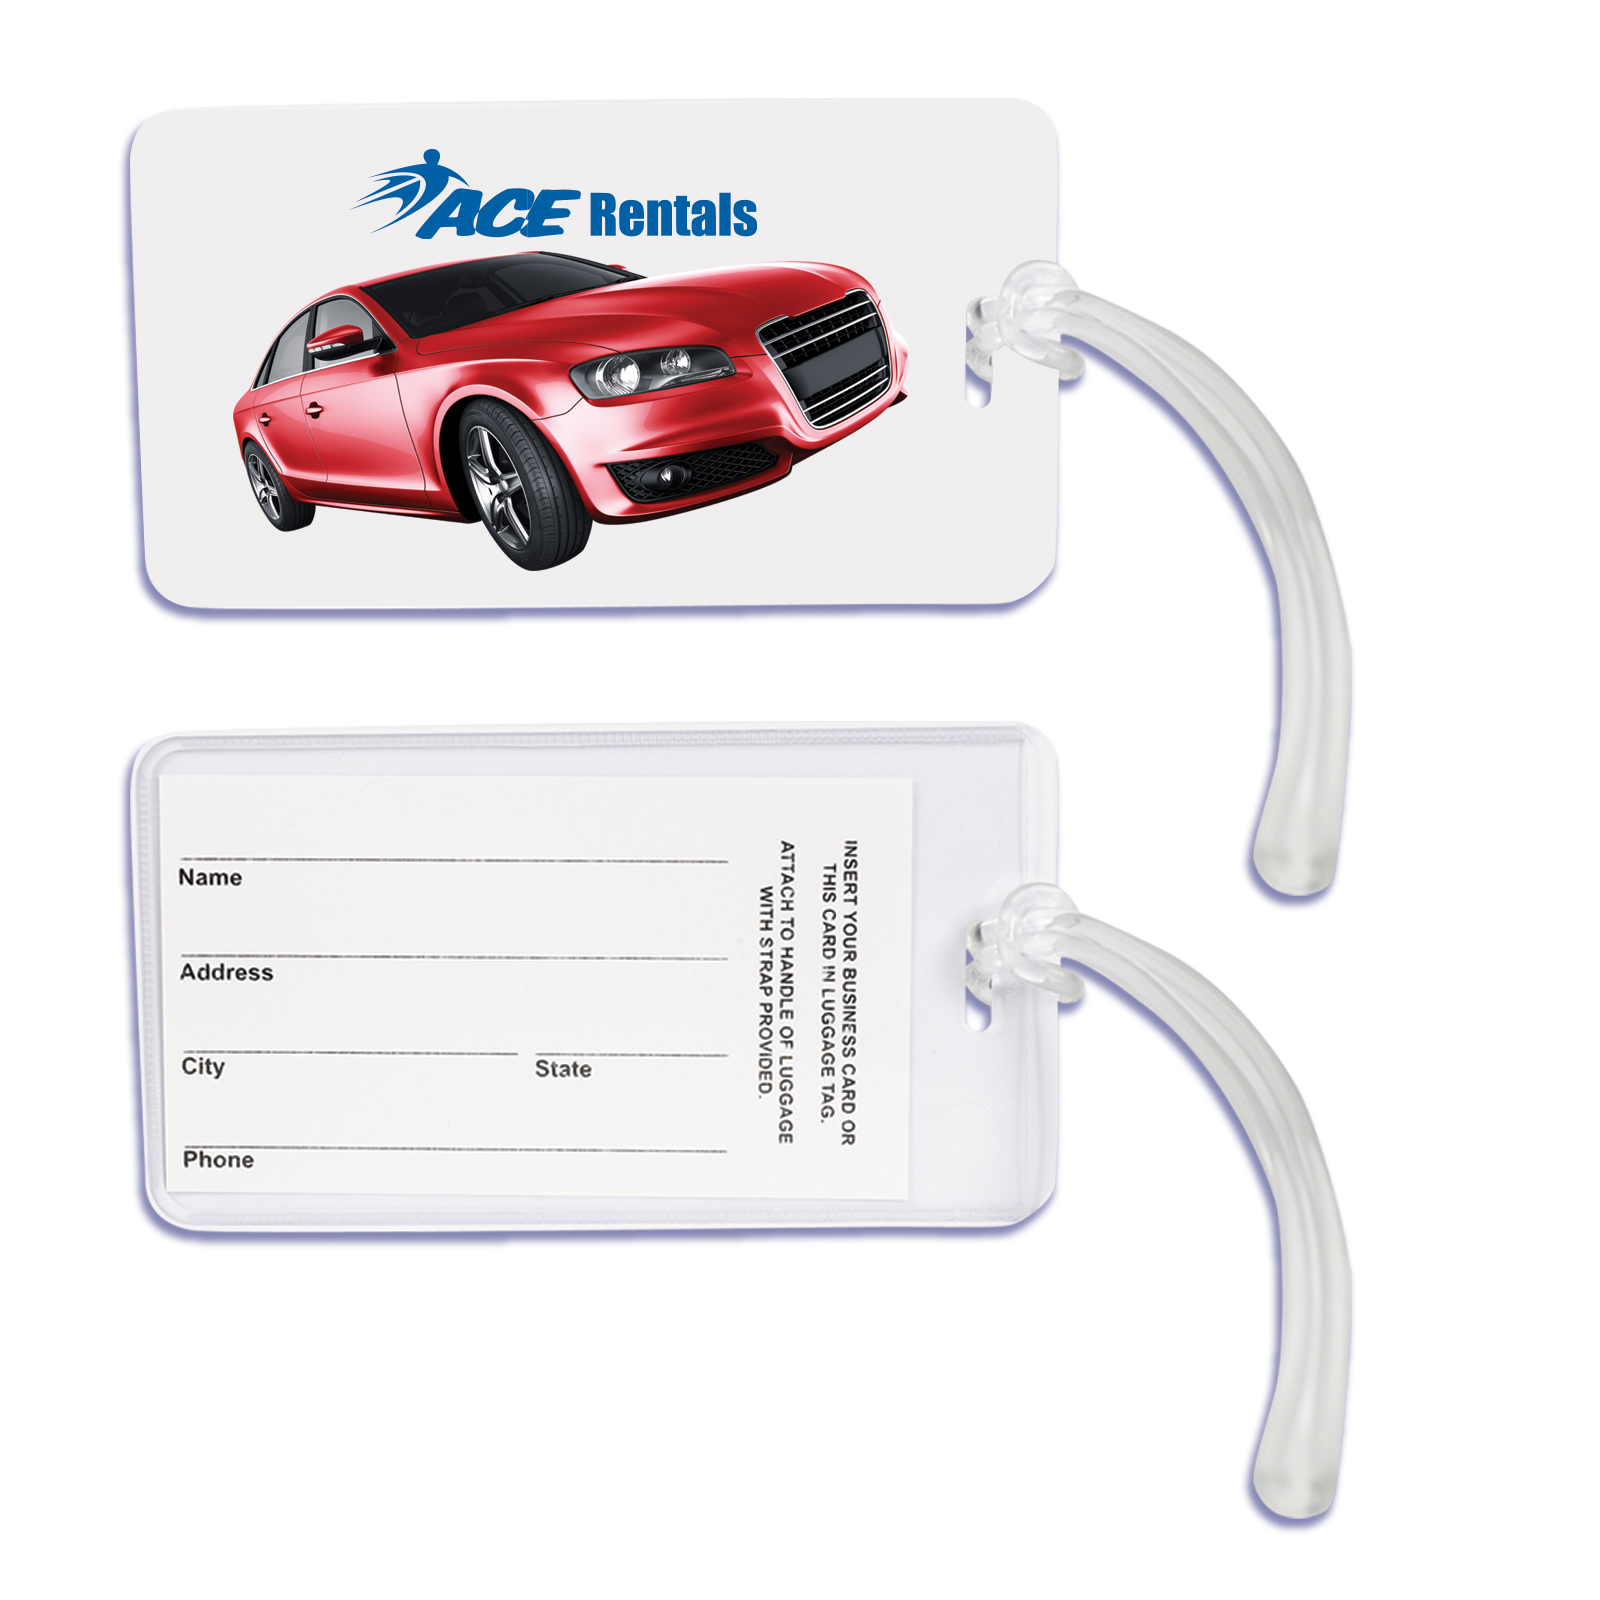 Monte Carlo Luggage Tag - Includes a 1 colour printed logo, From $1.03